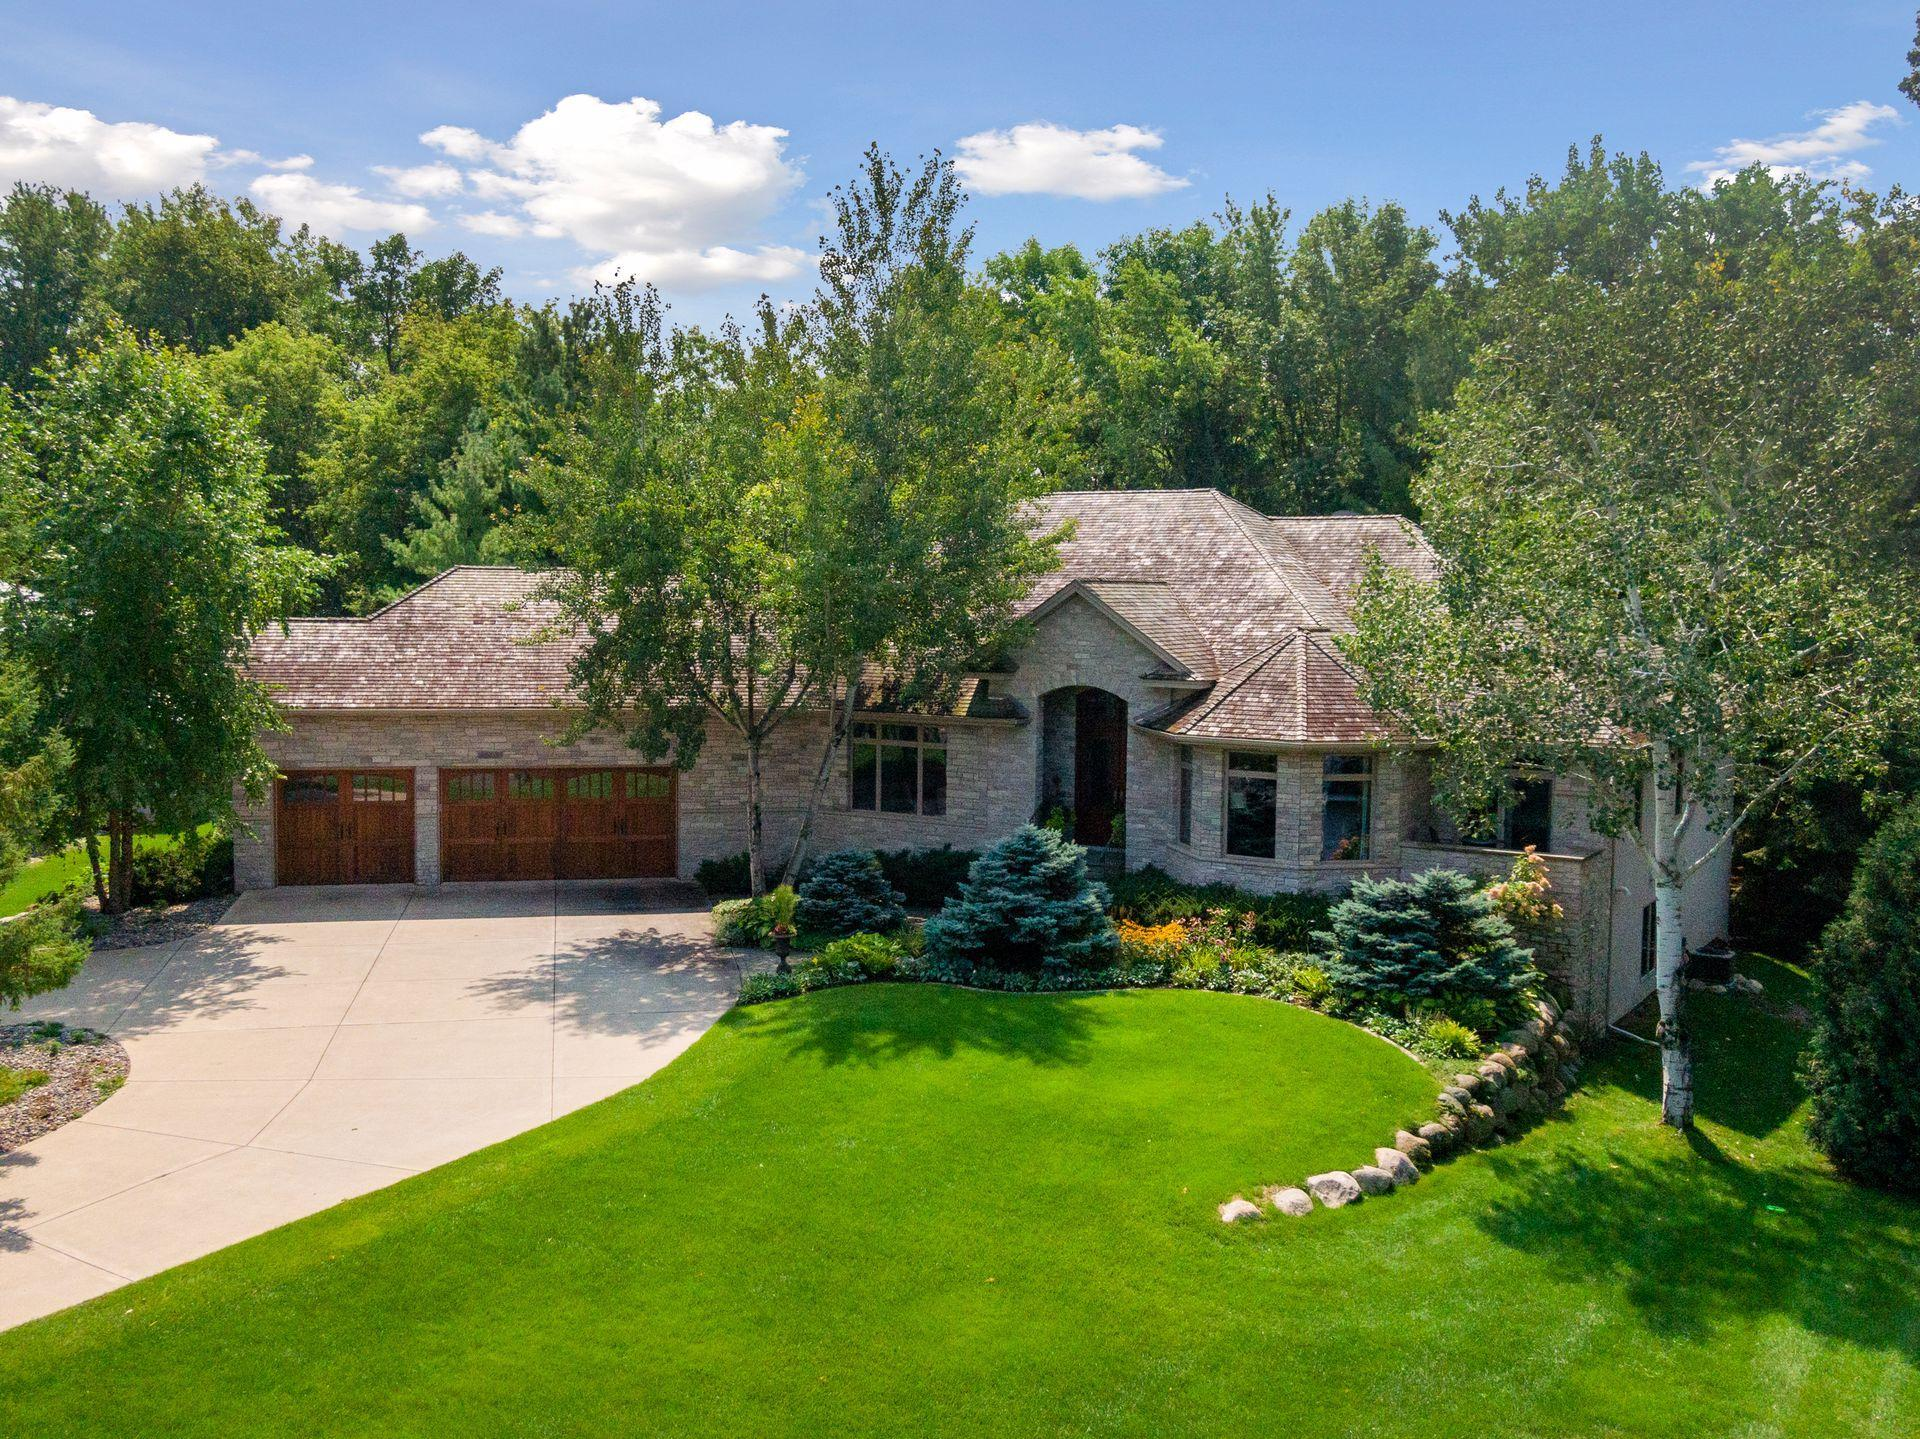 55 Clay Cliffe Drive Property Photo - Tonka Bay, MN real estate listing